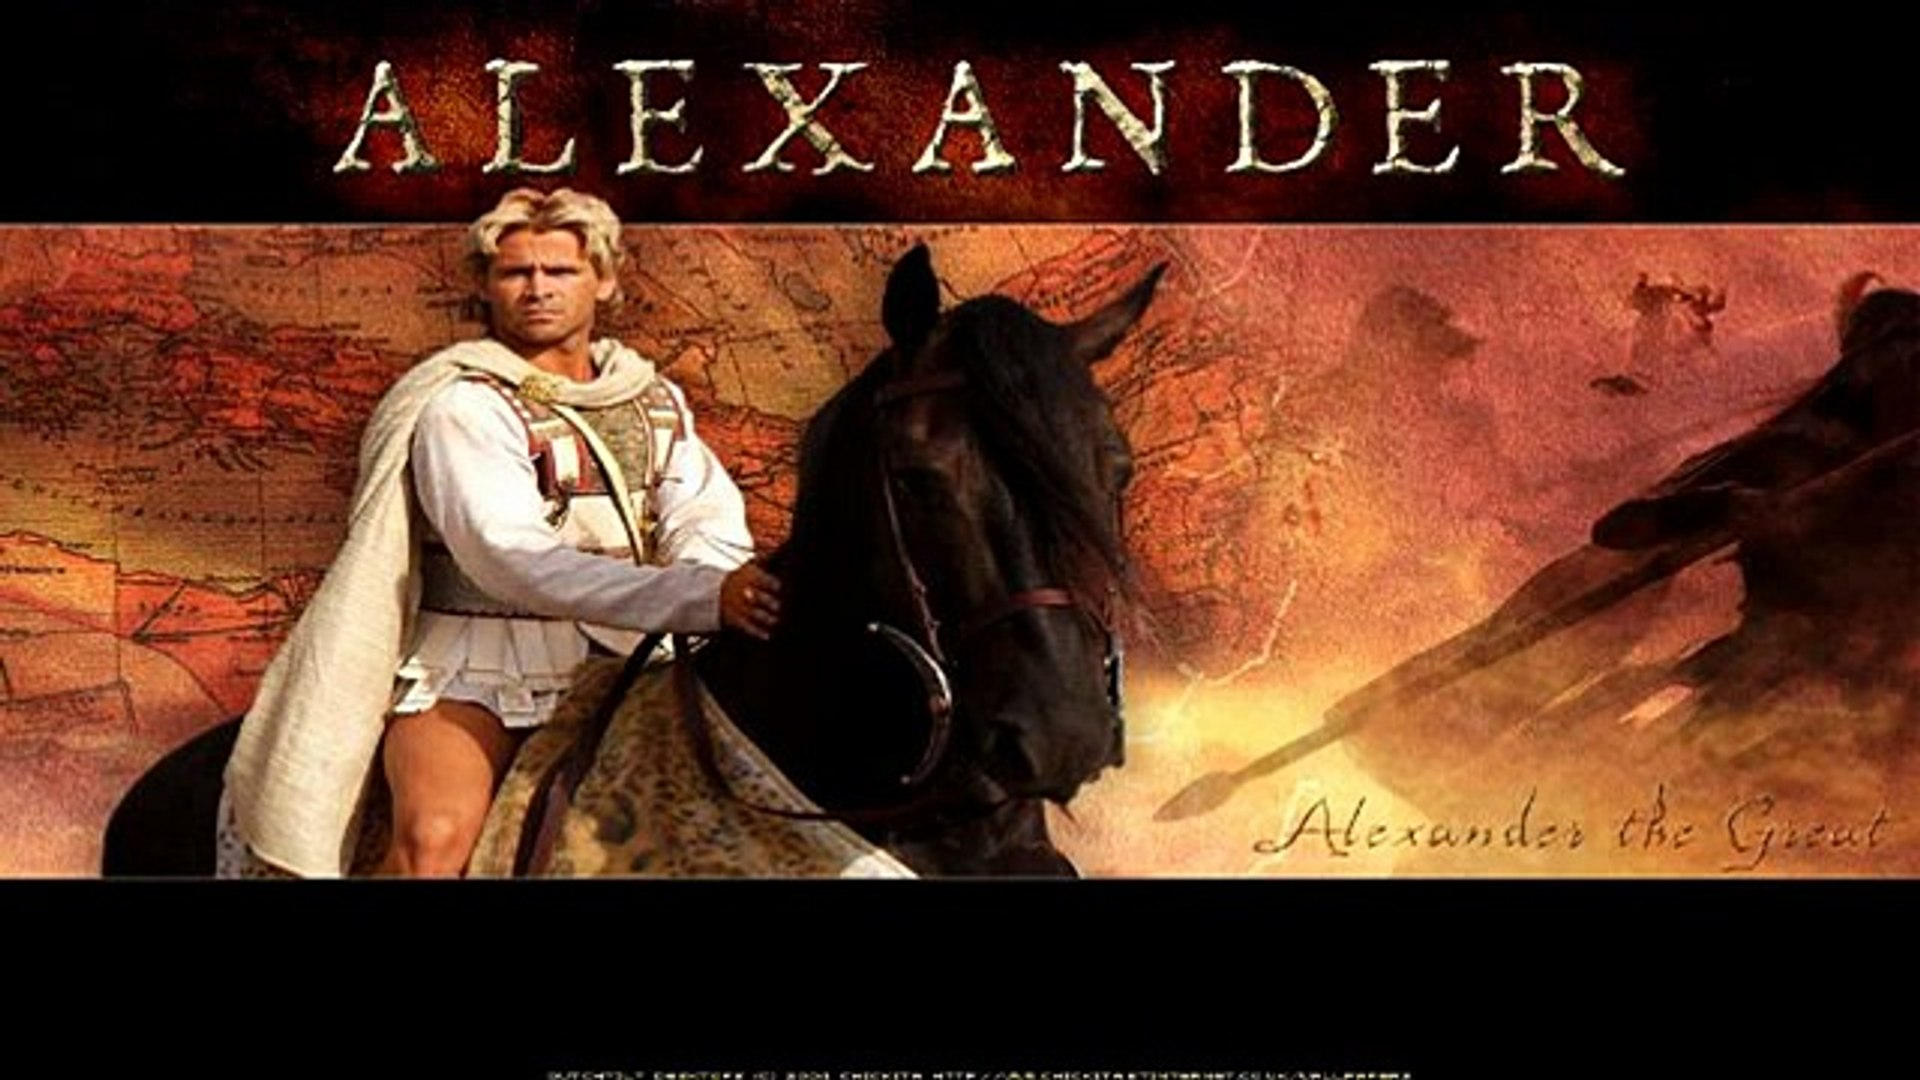 alexander the great movie online free watch in hindi